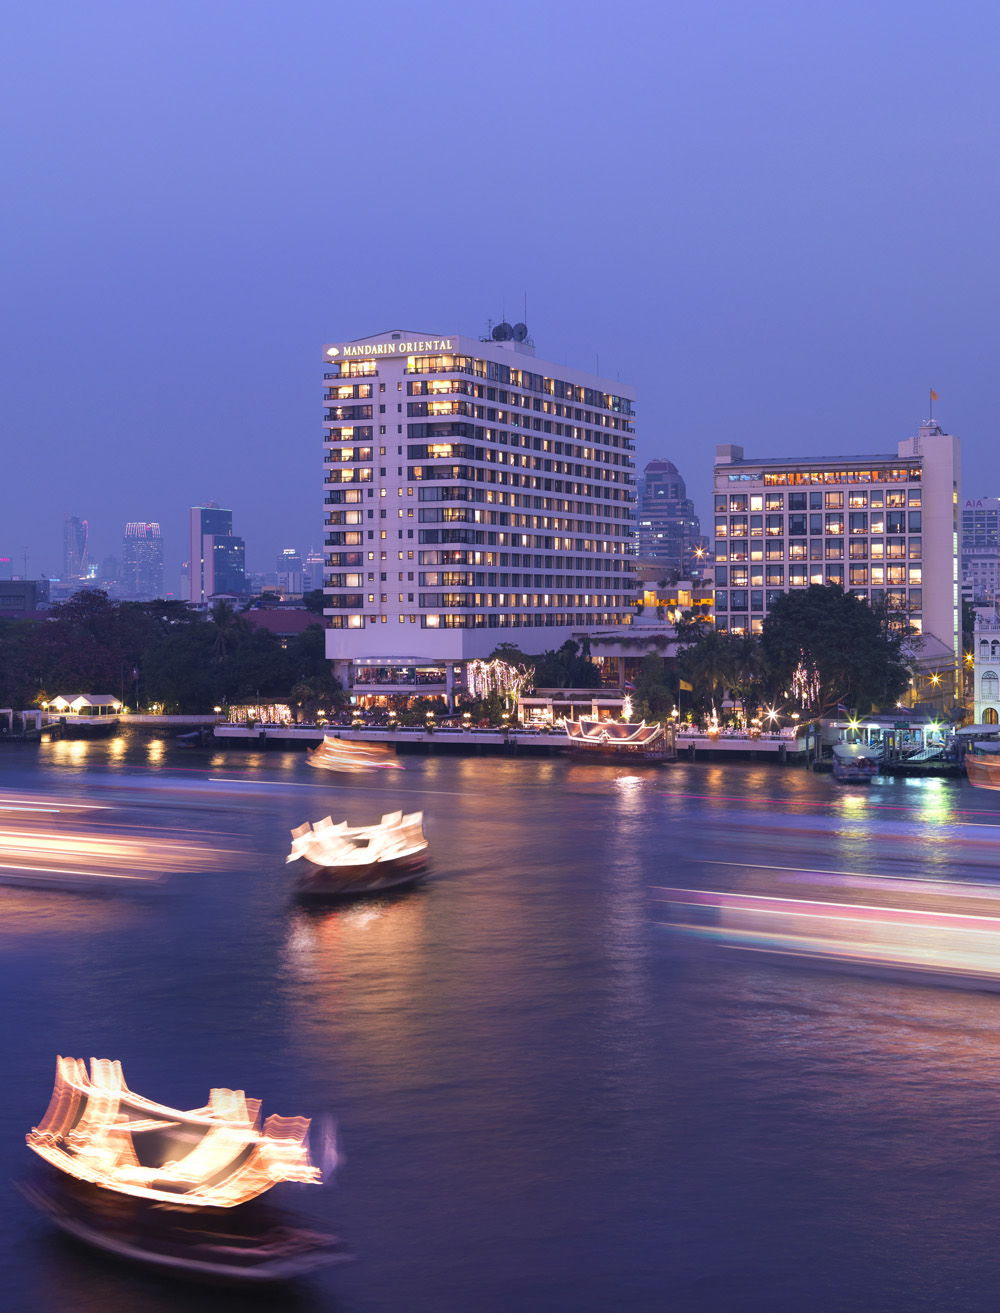 Mandarin oriental bangkok wikipedia for Top design hotels bangkok